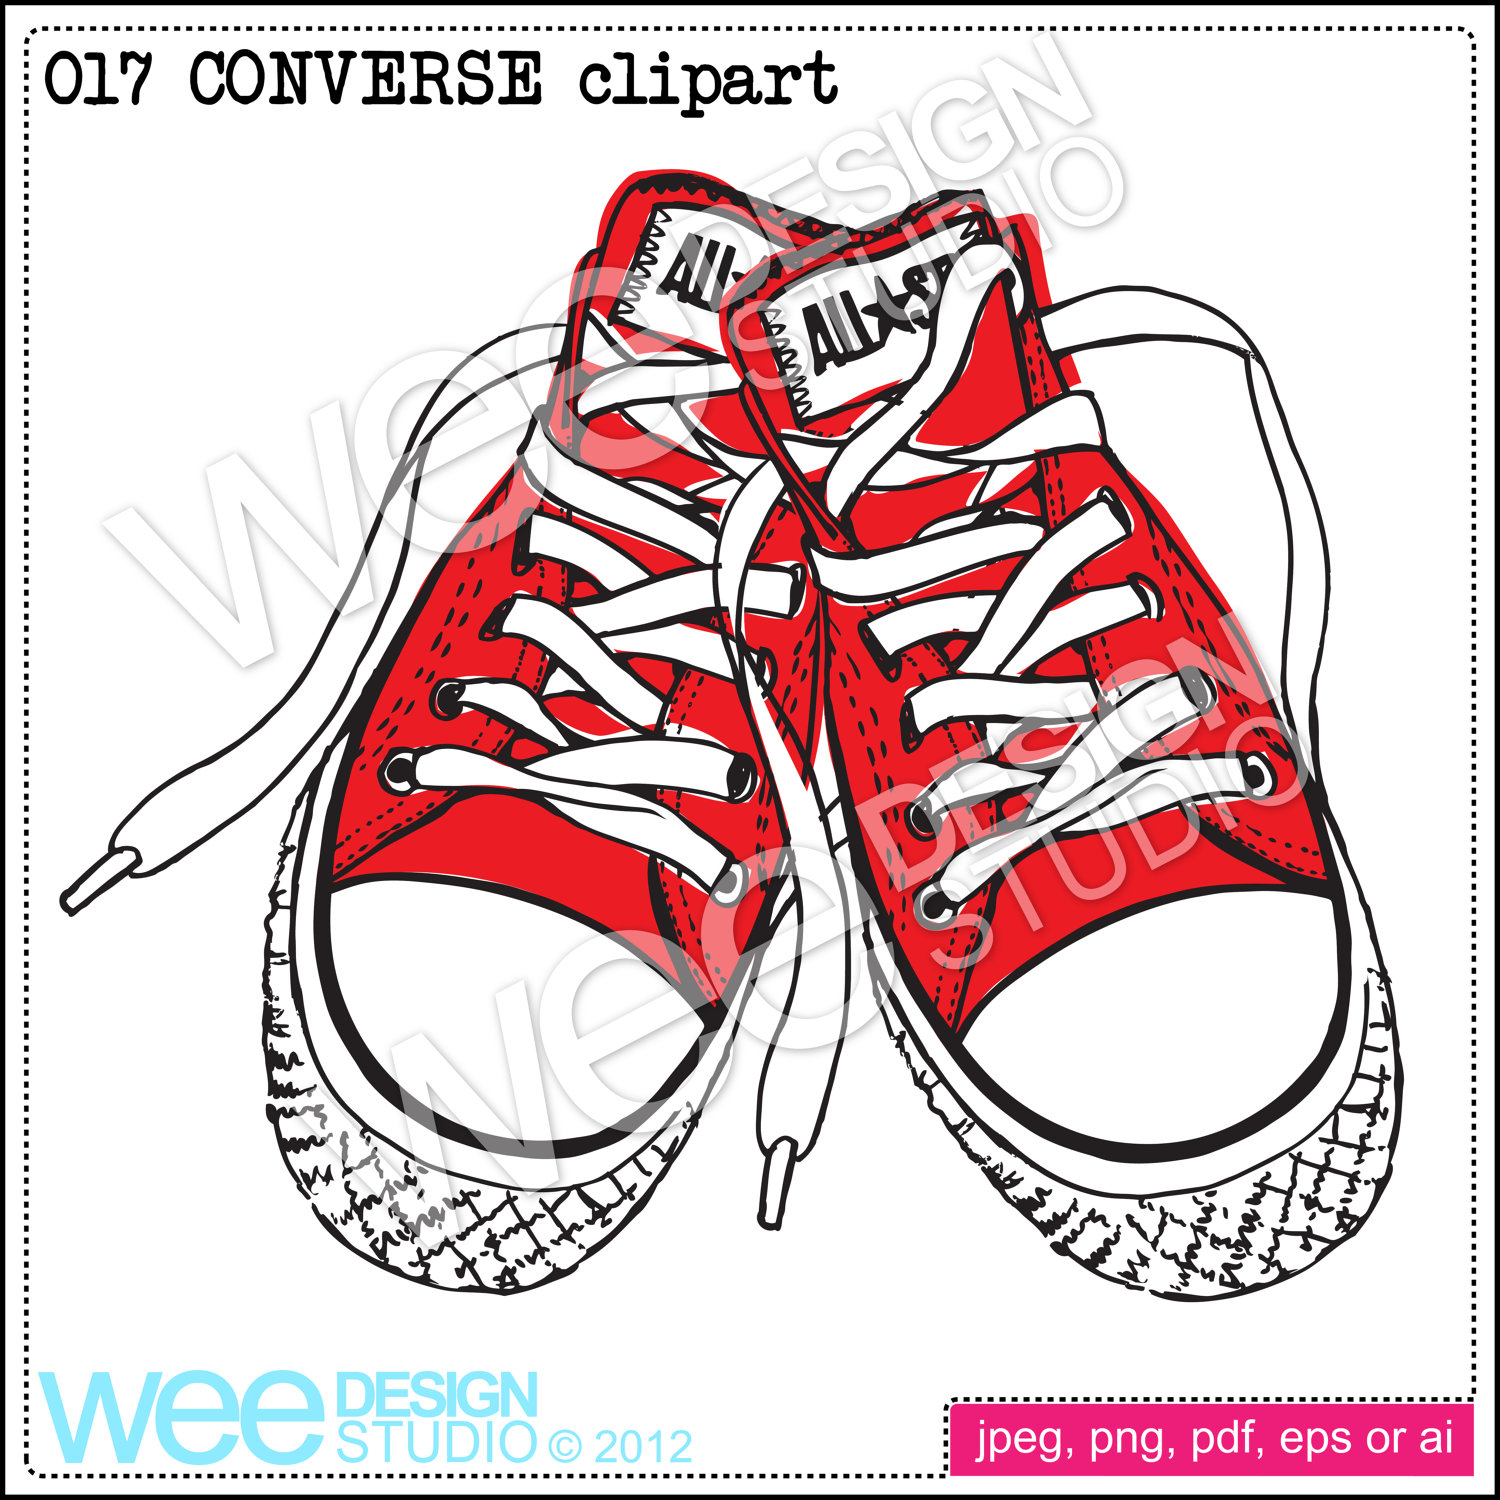 Drawing on at getdrawings. Converse clipart